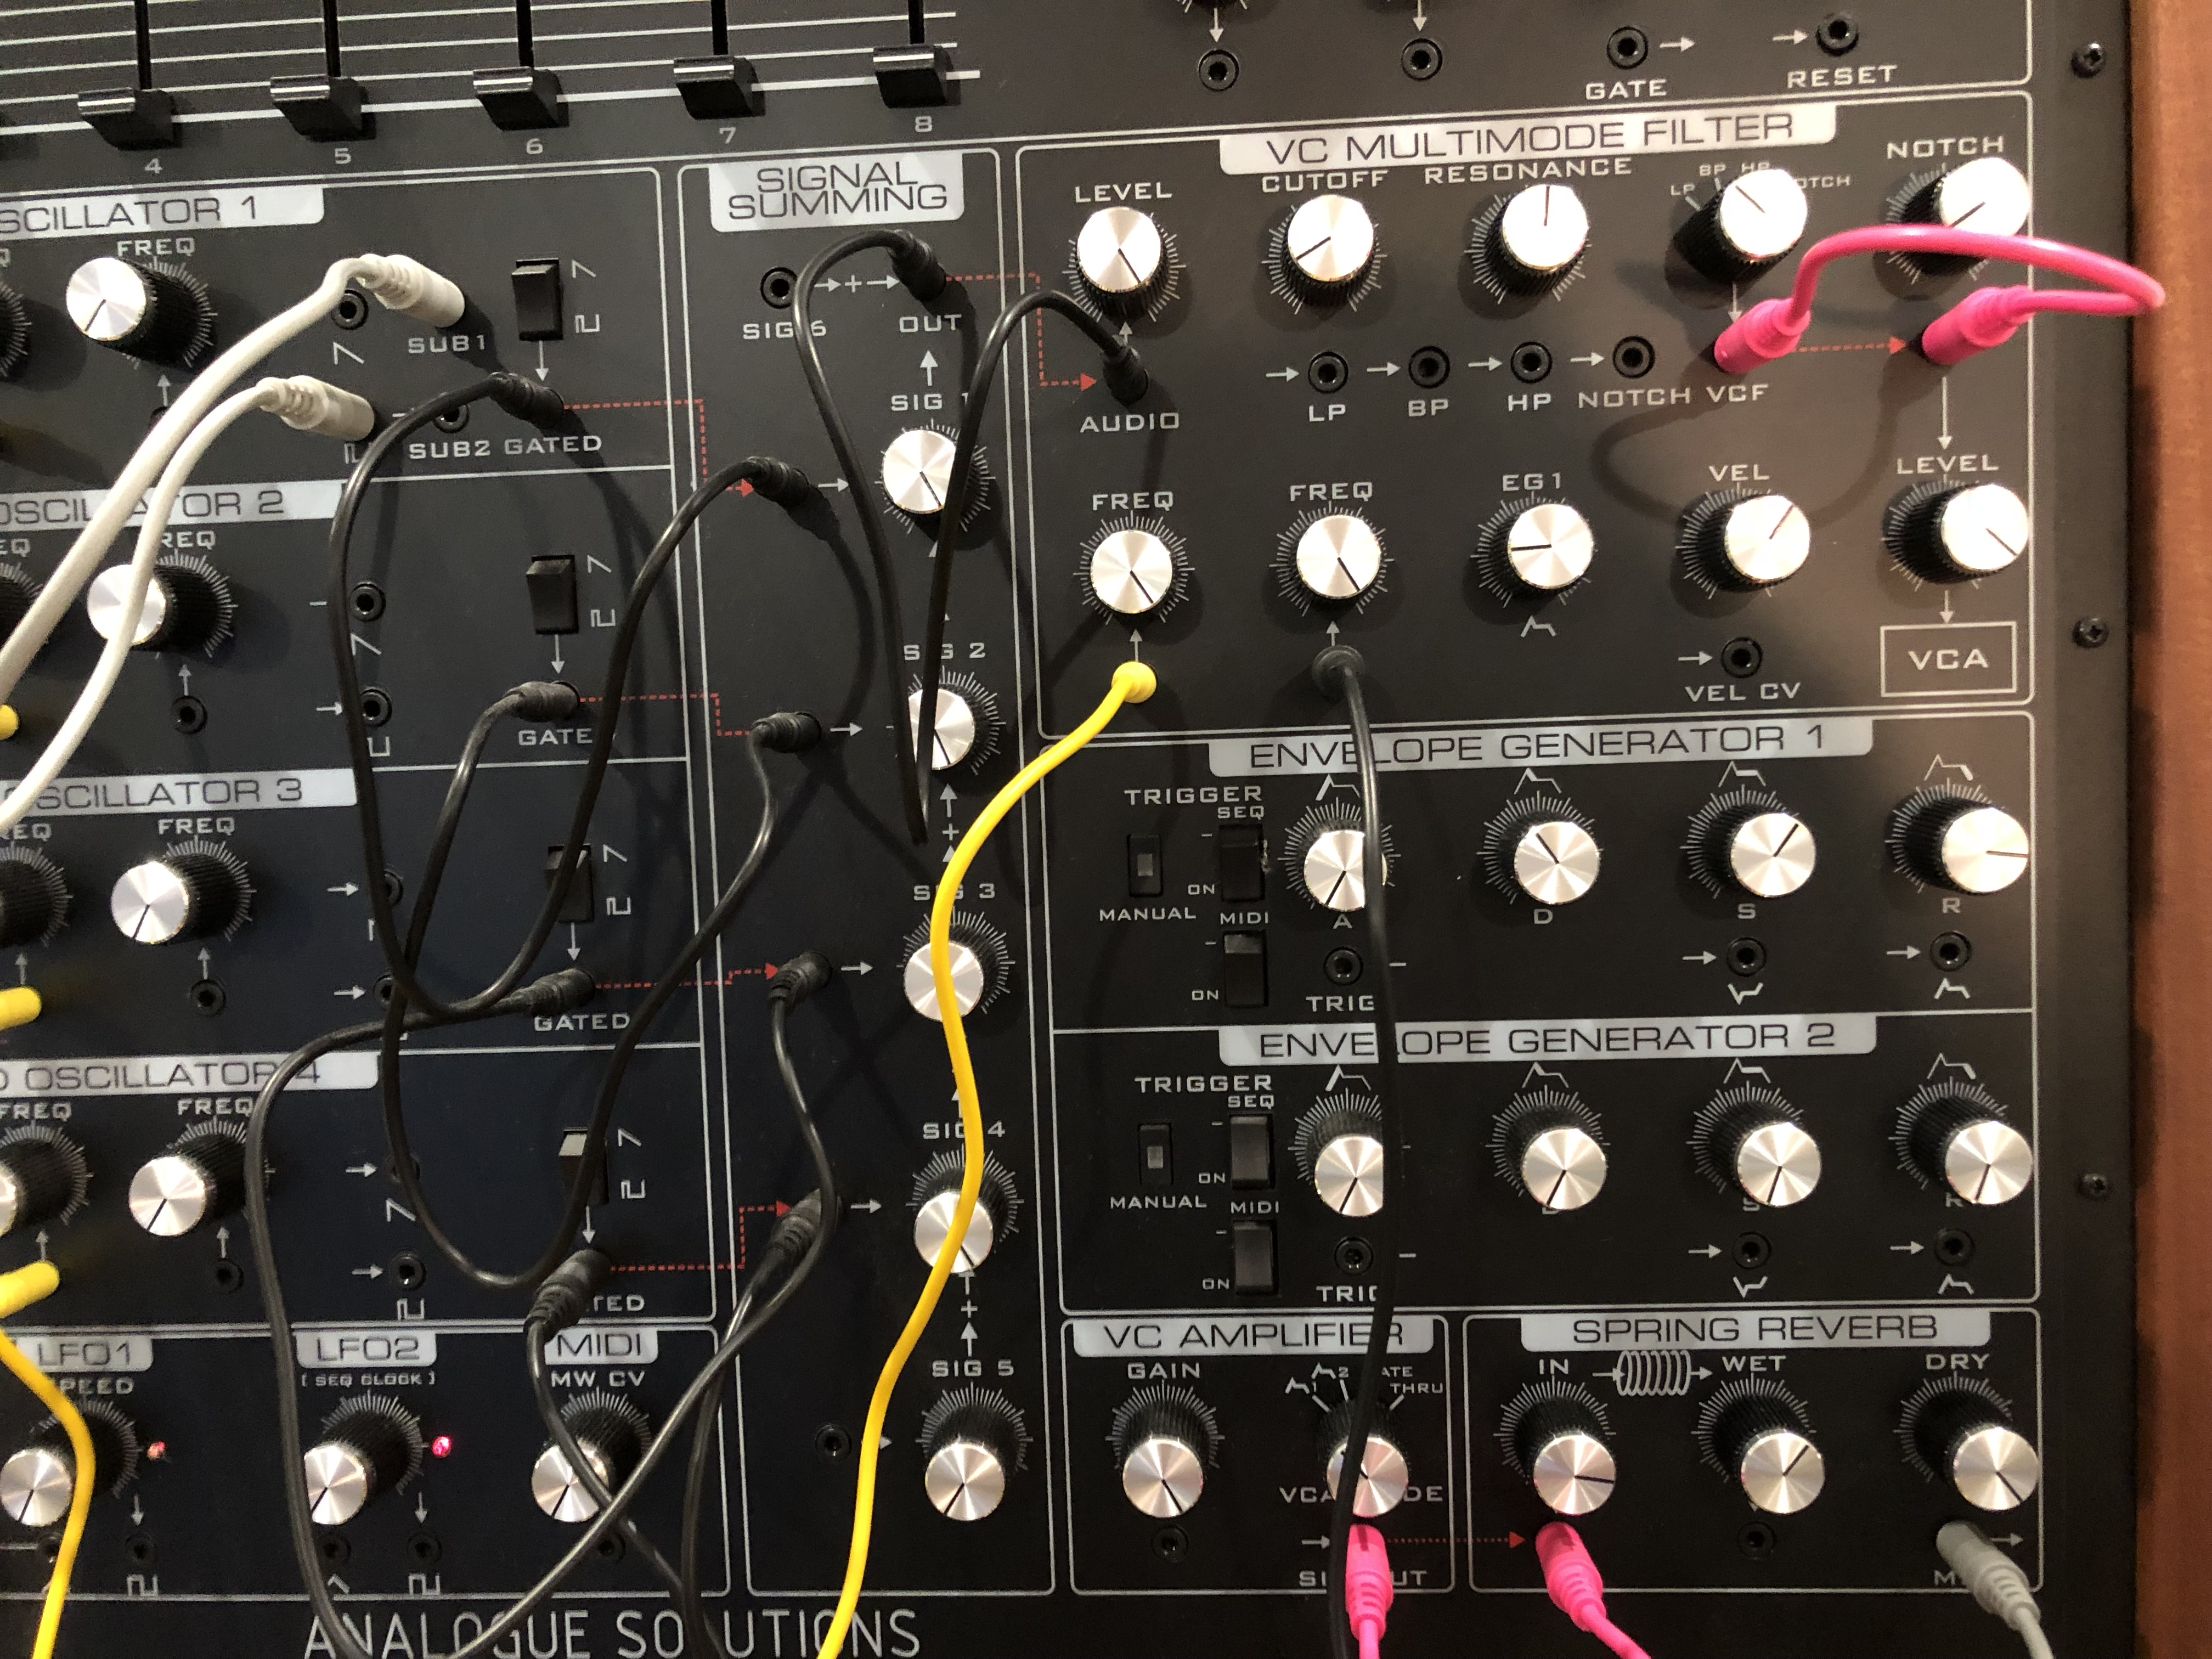 Sounds From The Shed Sequencer Workflow Demo Start To How Wire A For Electricity Wiring Img 10014032x3024 272 Mb